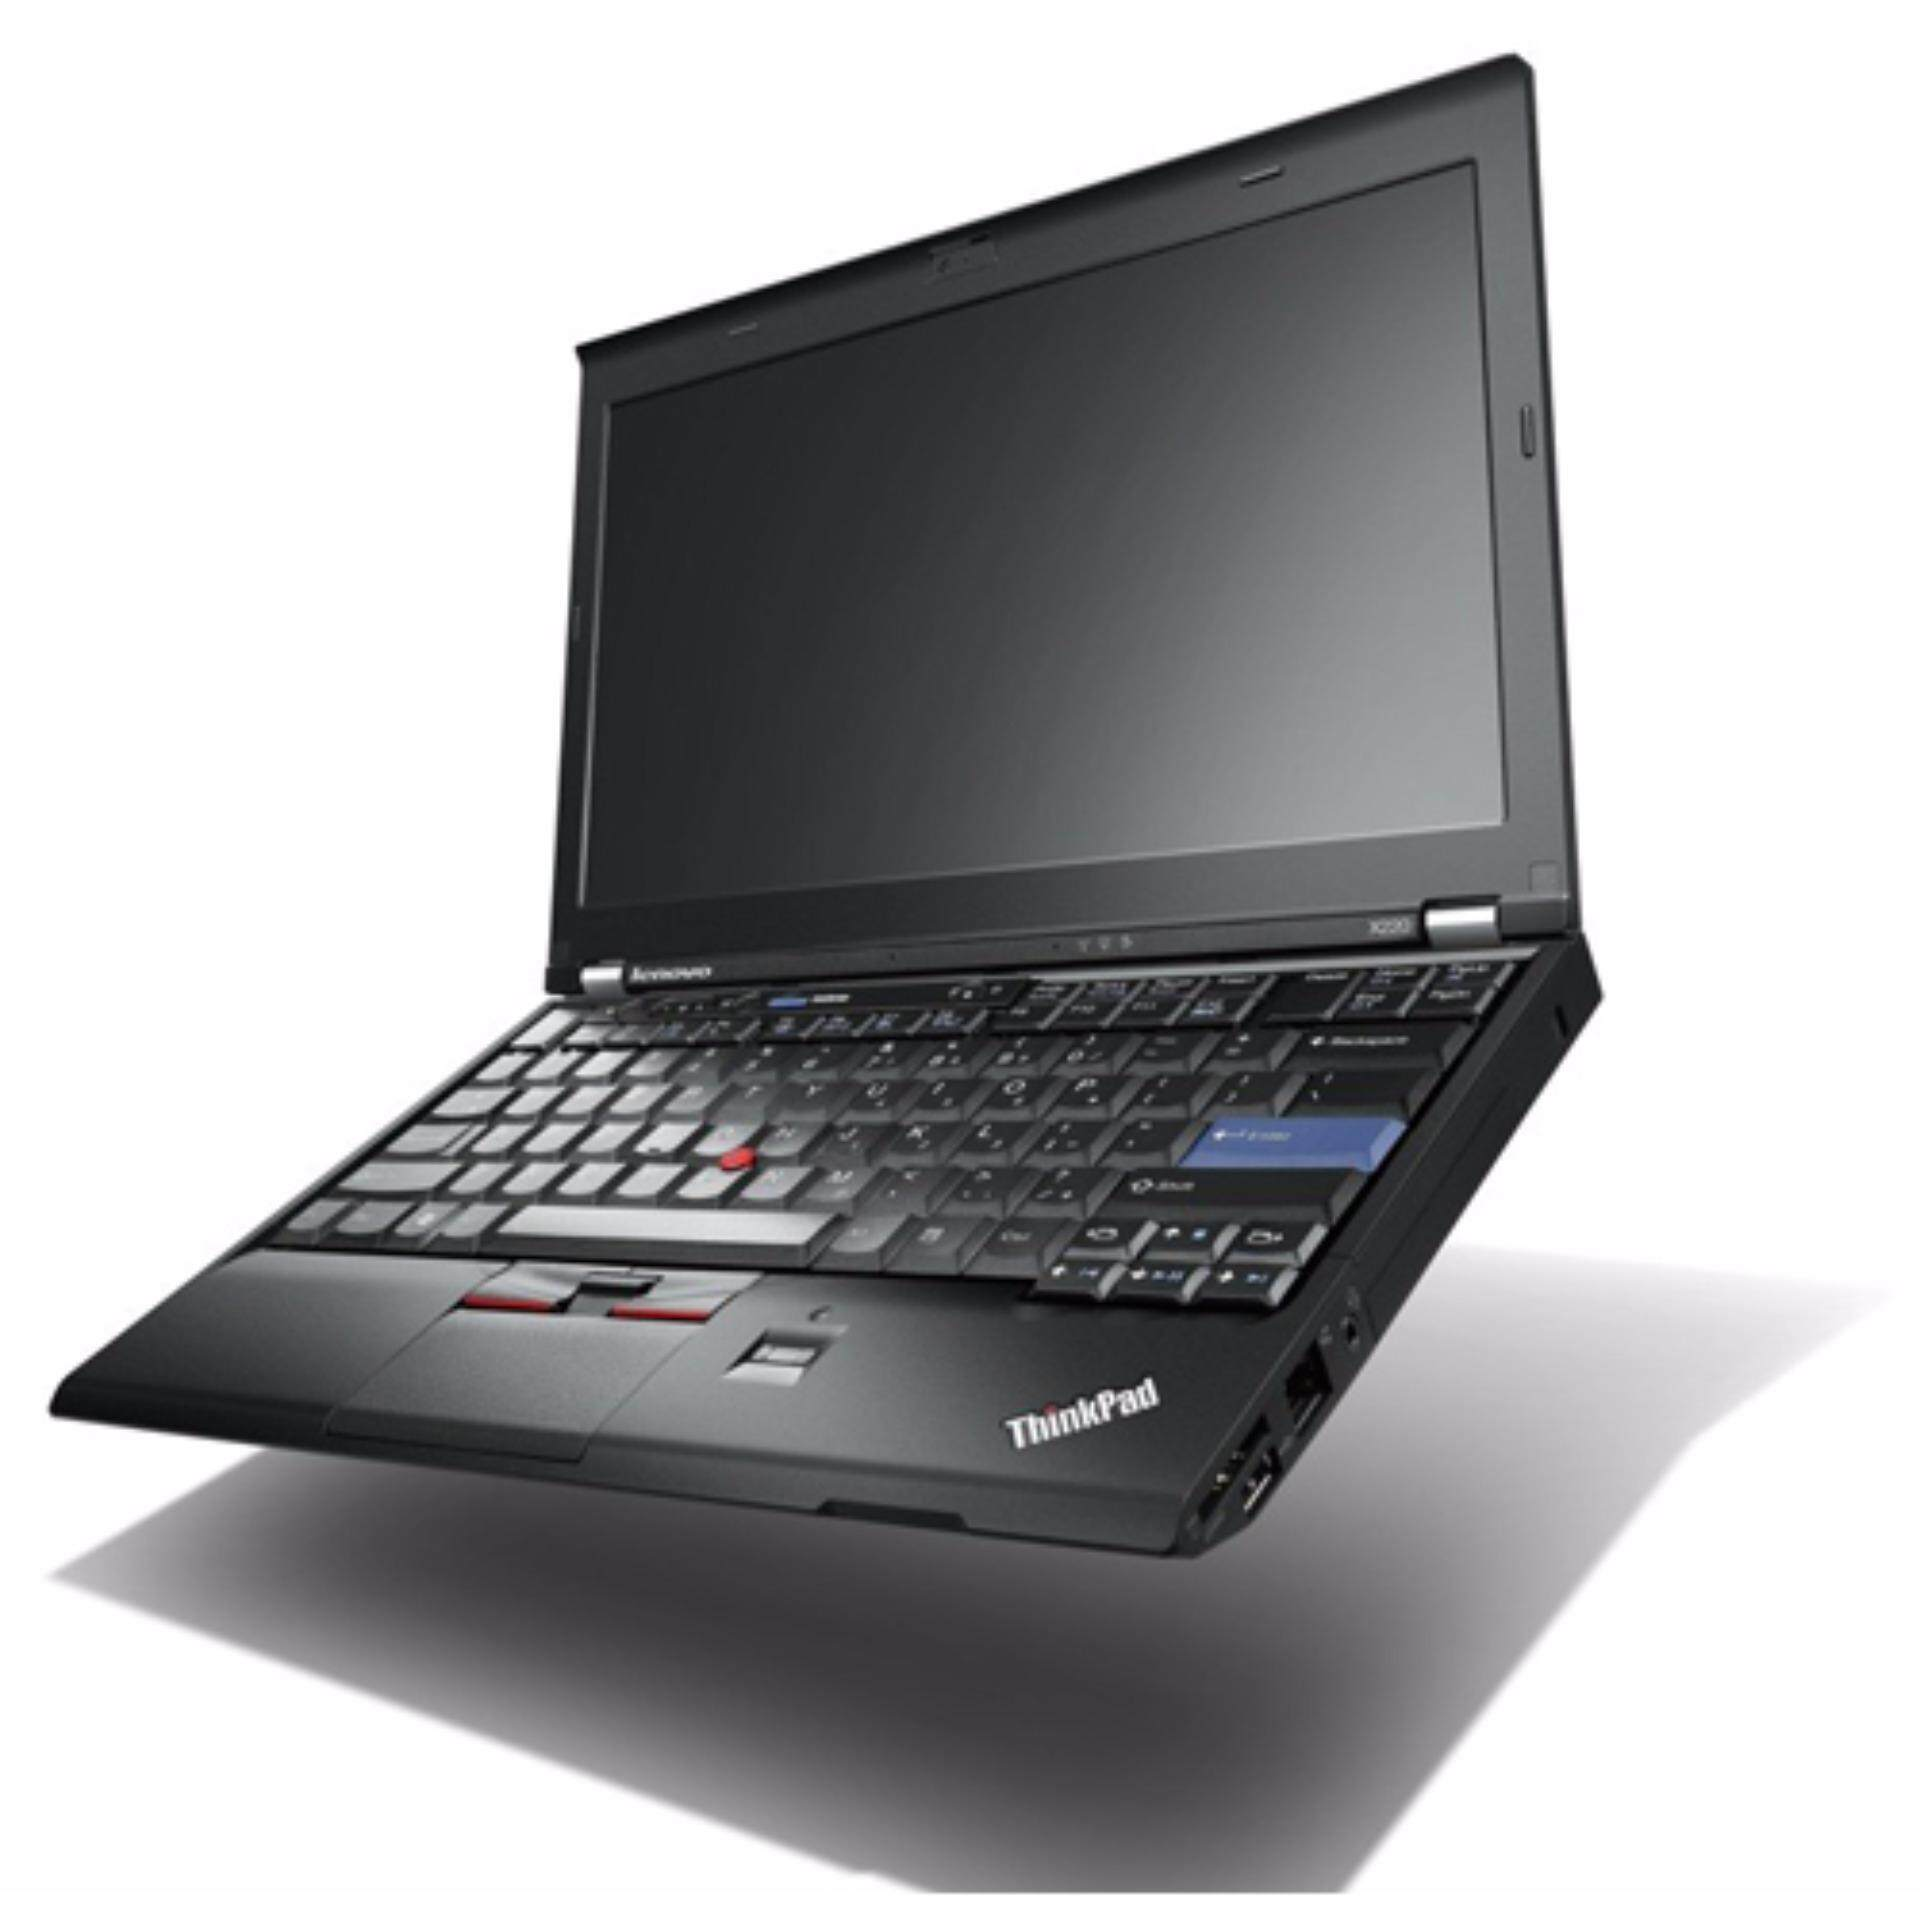 (Factory Refurbished) LENOVO X220 Thinkpad / Intel Core i5 2.50Ghz / 4 GB DDR3 RAM / 320 GB HDD /  Window 7 / 12.5 Inch Screen Display Malaysia